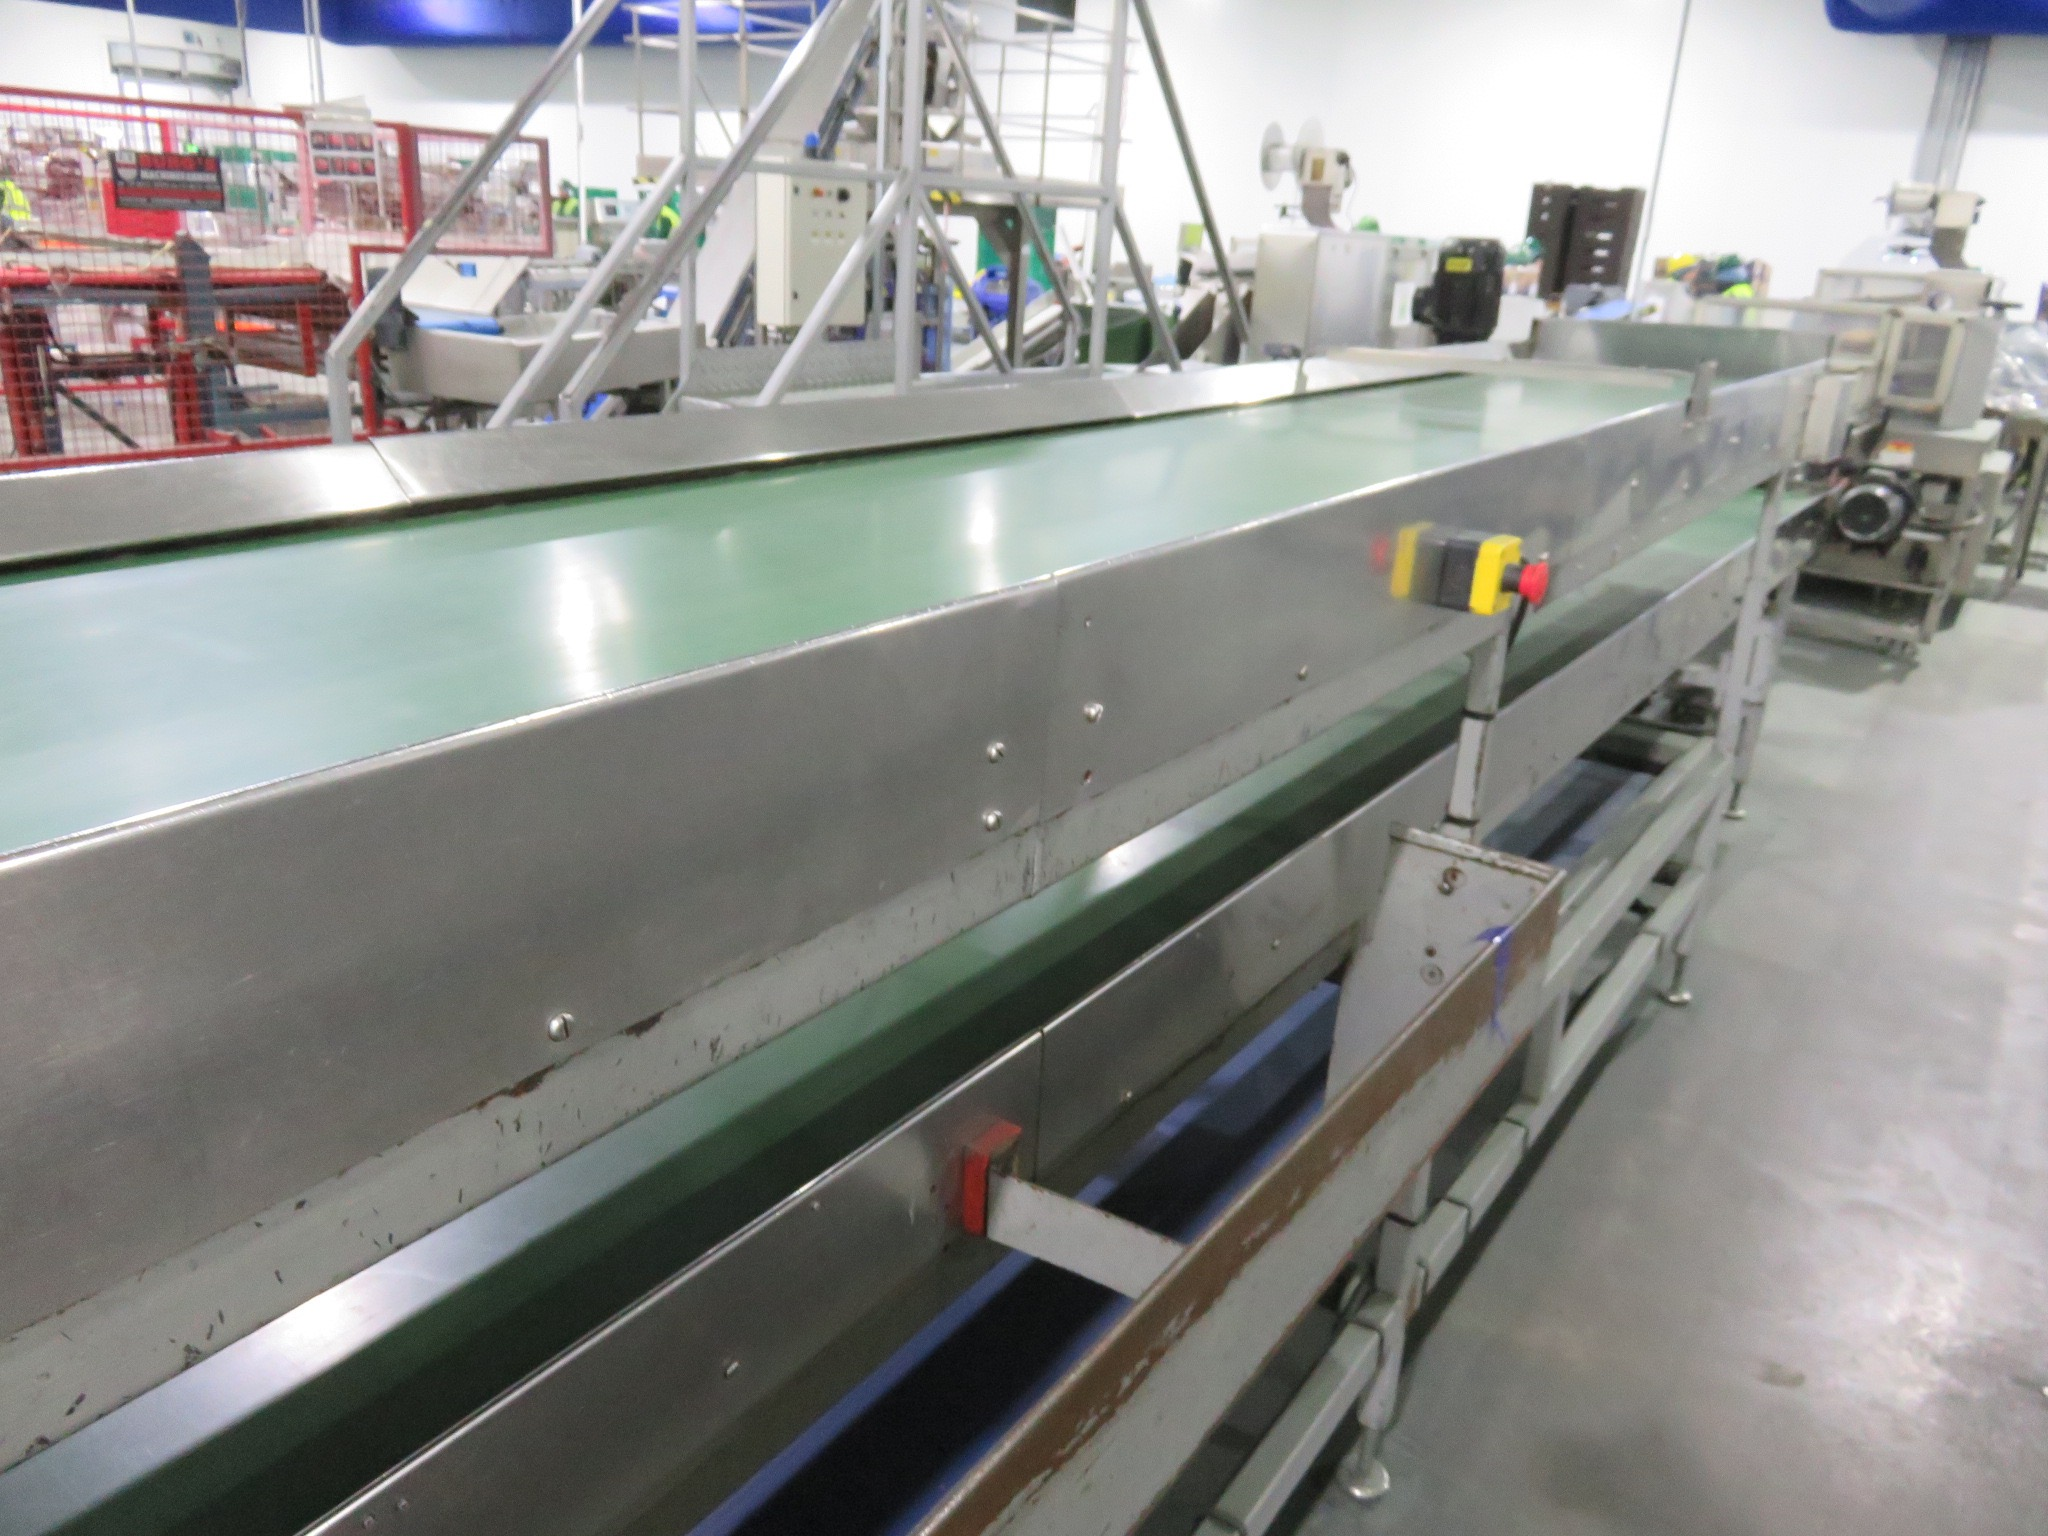 Lot 2 - 3 Tier sorting conveyor, top & bottom tier 4 mfr long, middle tier 6 mfr long with PEC flow control